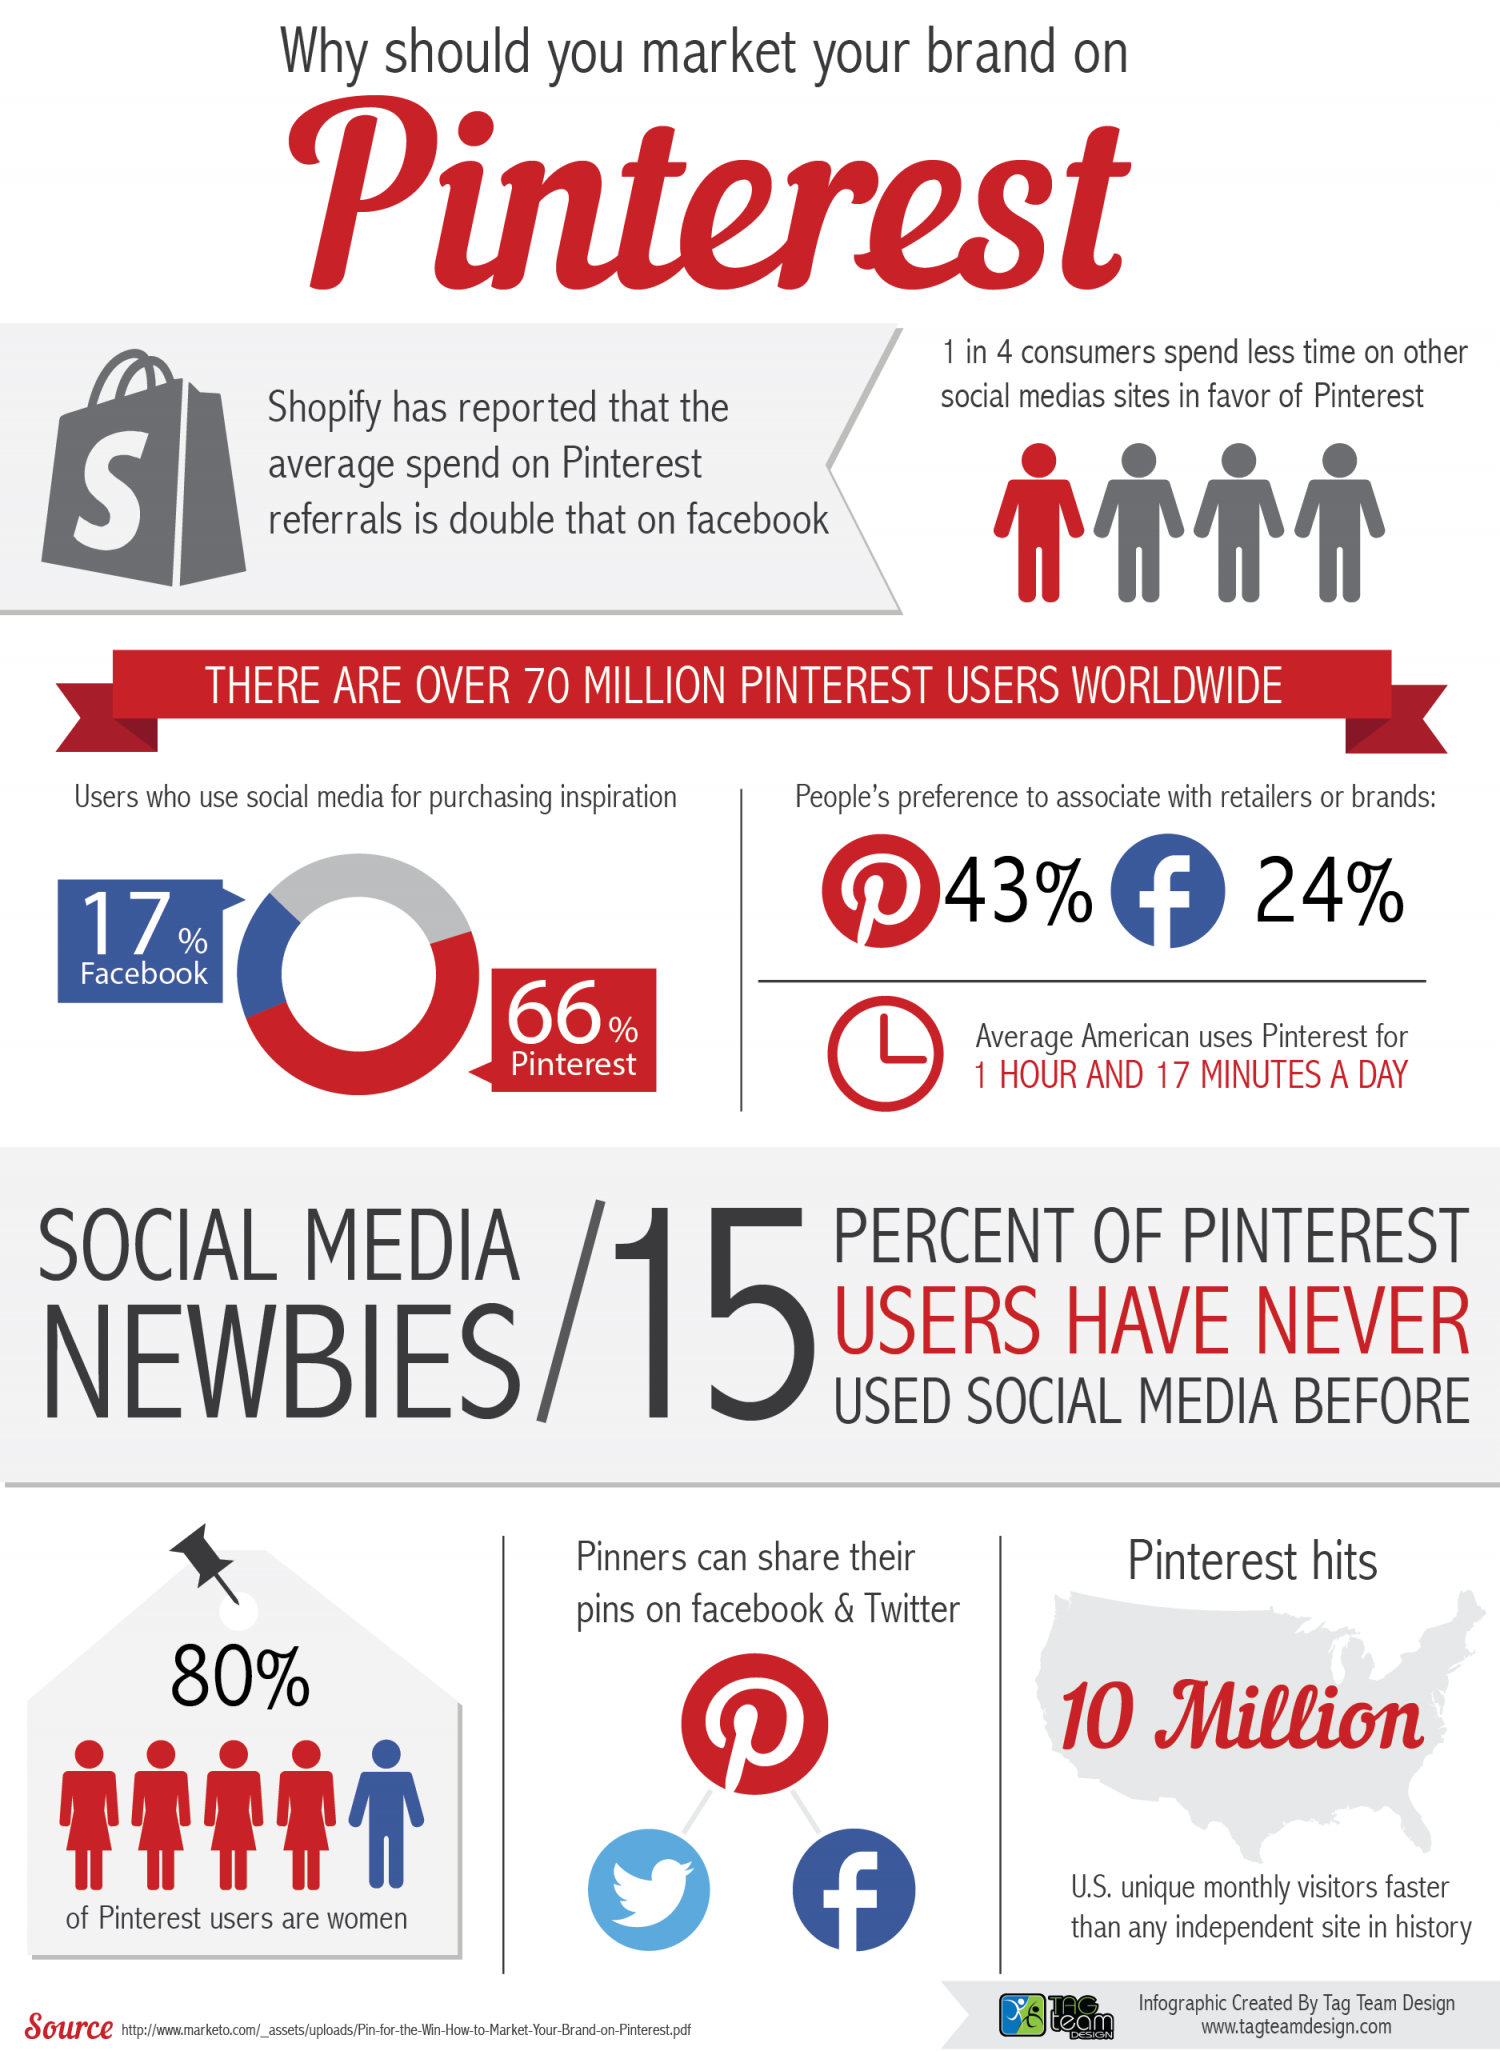 Why should you market your brand on Pinterest? Infographic